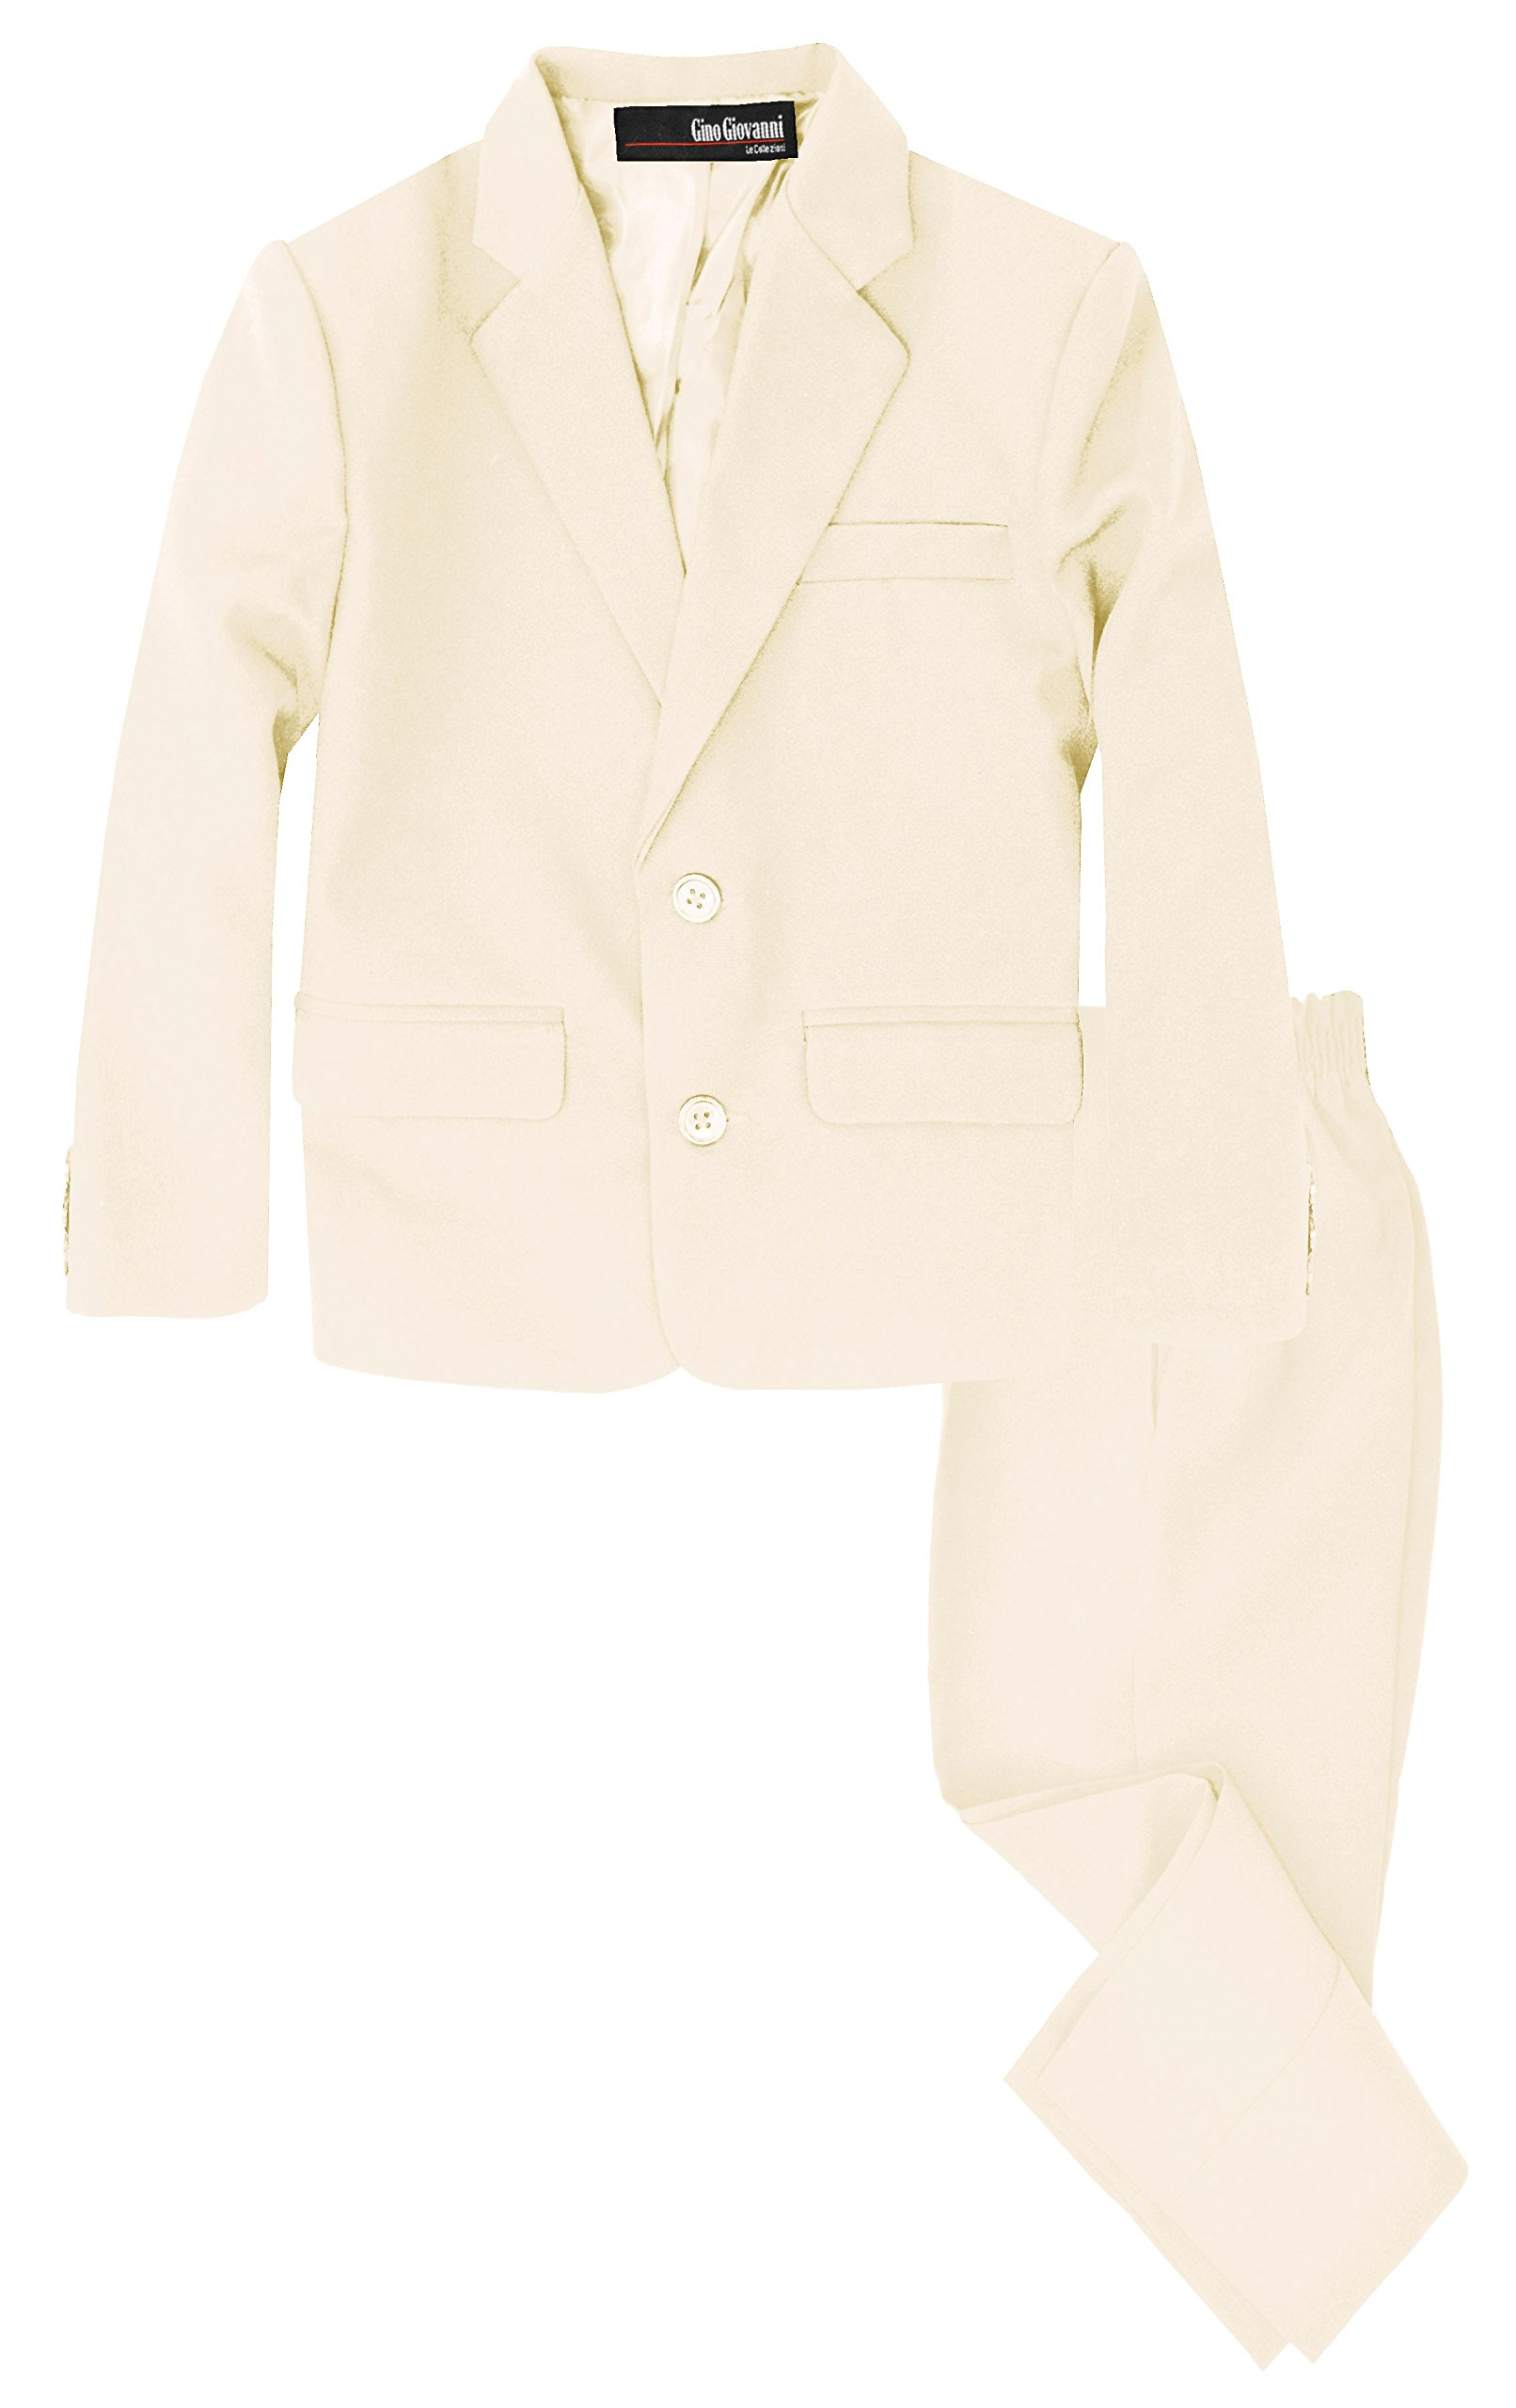 G218 Boys 2 Piece Suit Set Toddler to Teen (5, Ivory)